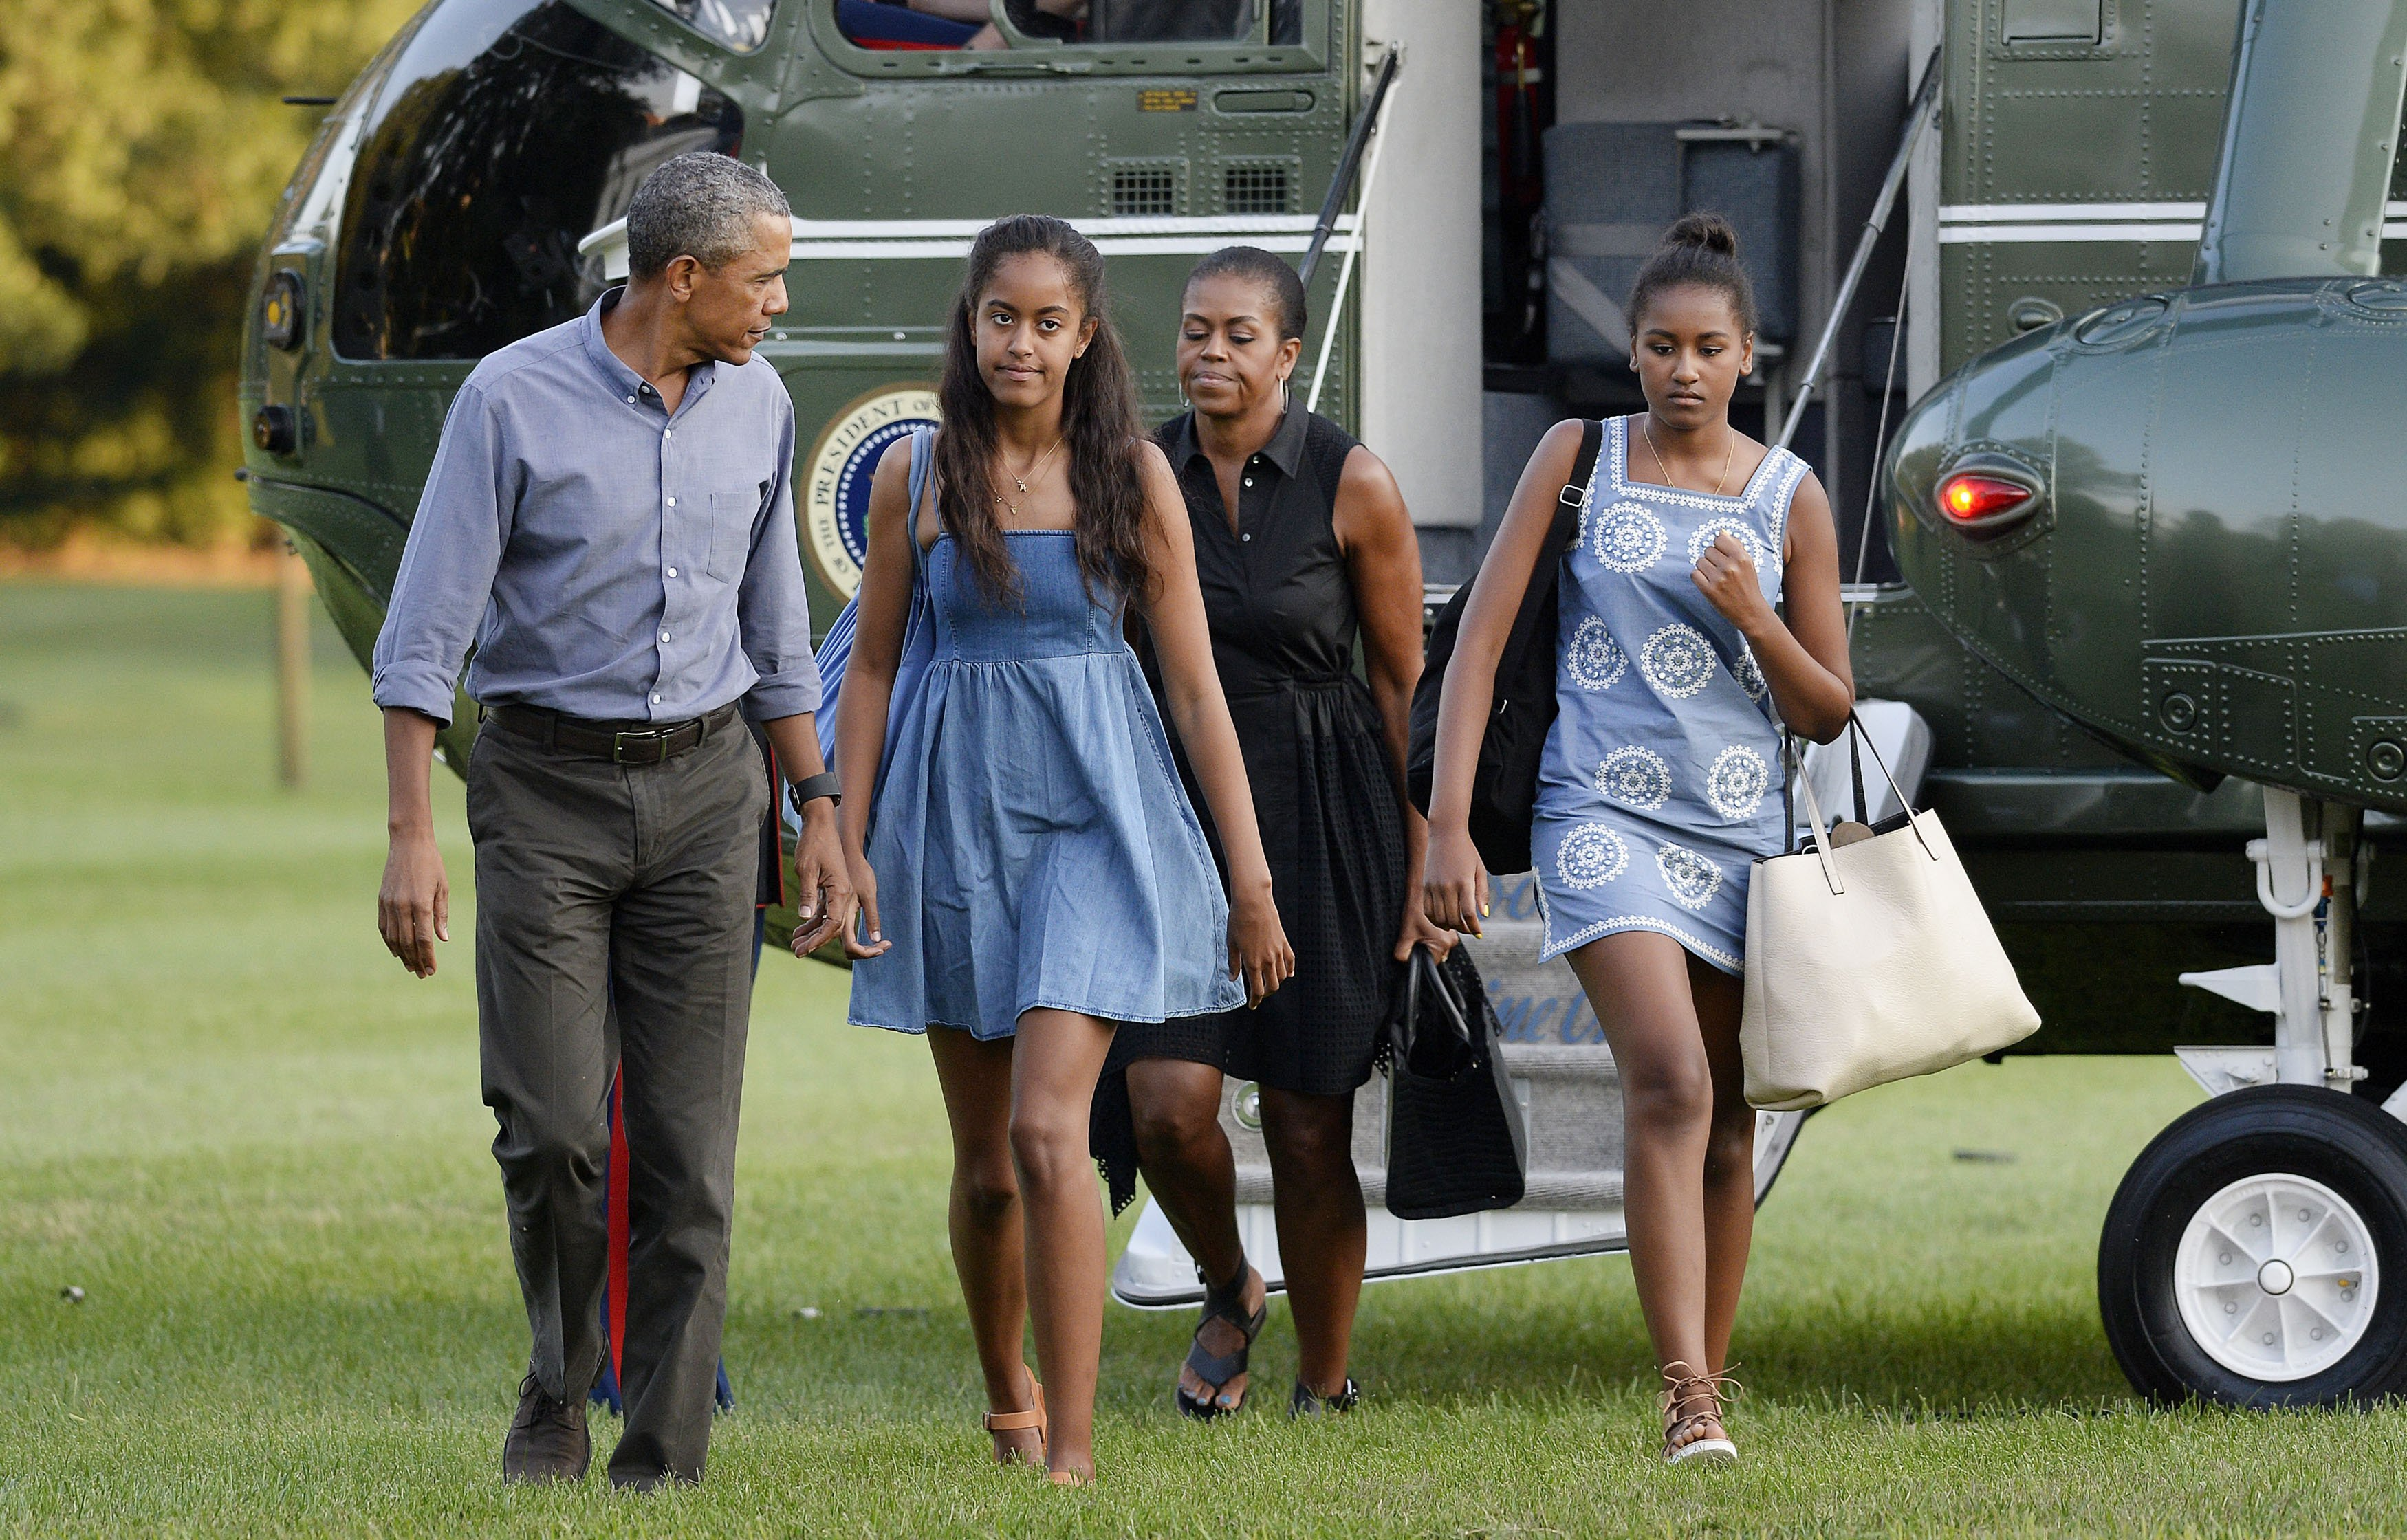 Barack and Michelle Obama, and daughters Sasha and Malia, arrive at the White House August 23, 2015 in Washington, D.C. | Photo: GettyImages